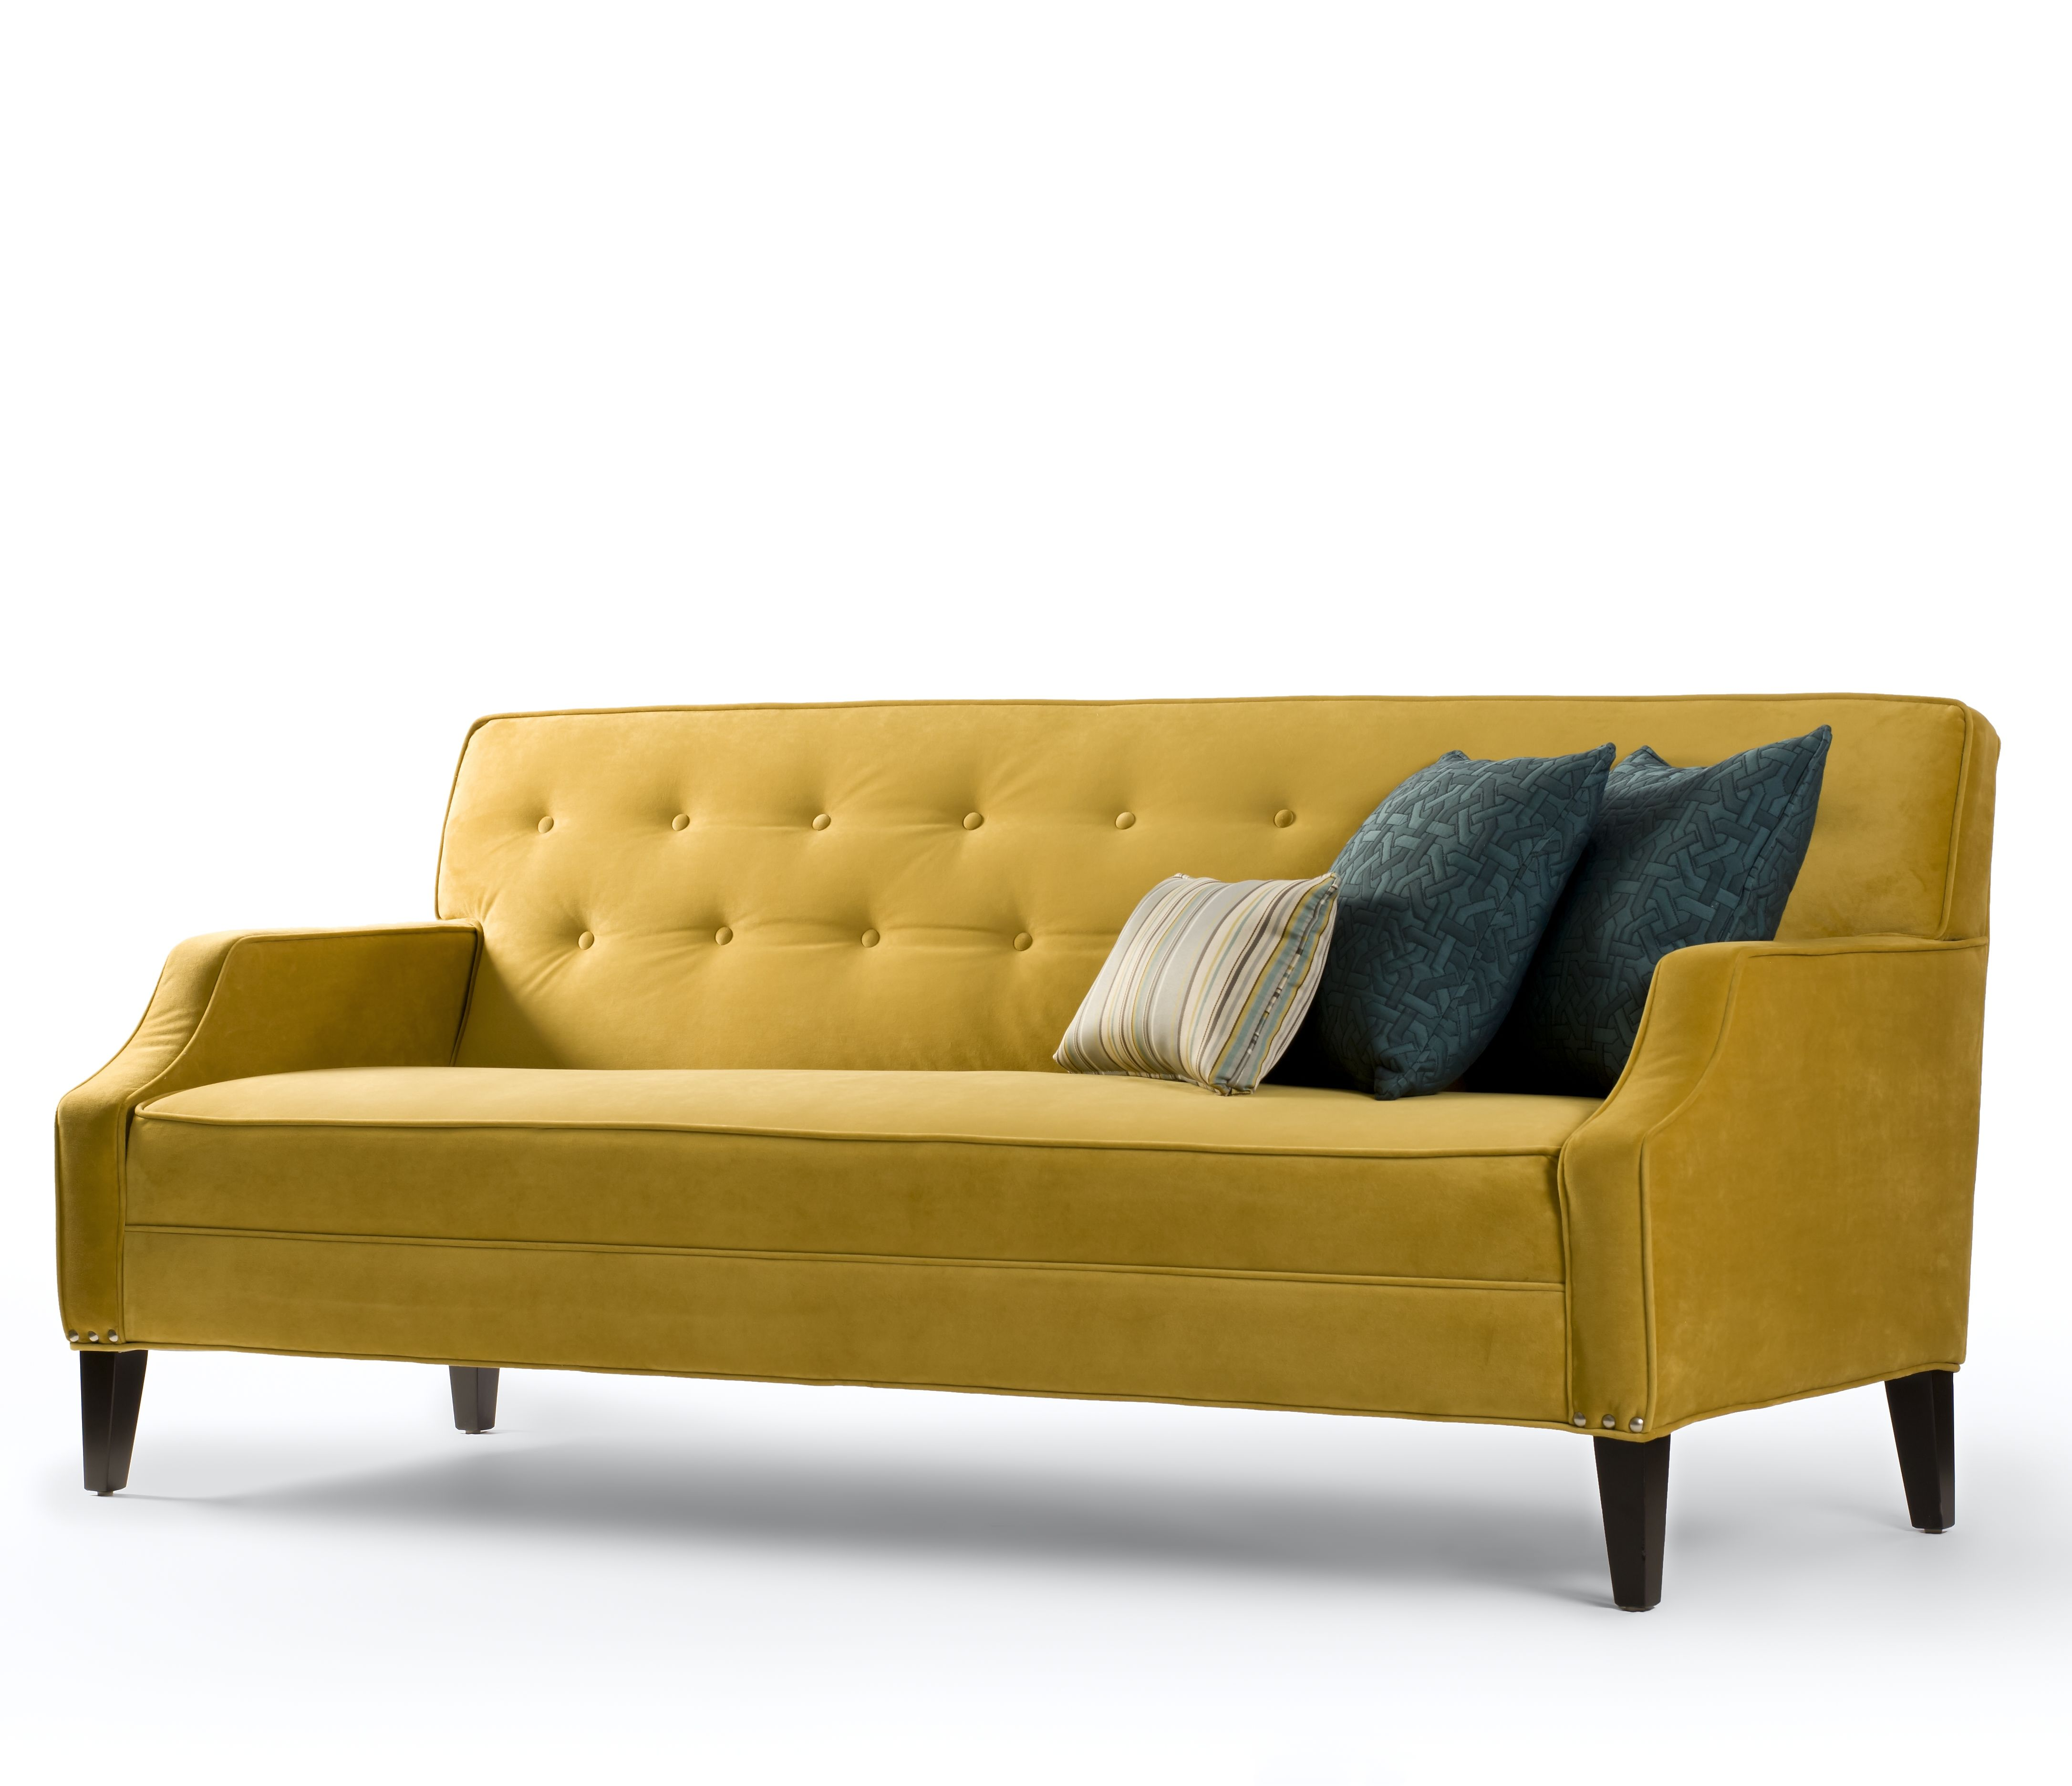 retro golden yellow couch love and reminds me of my great grandmas